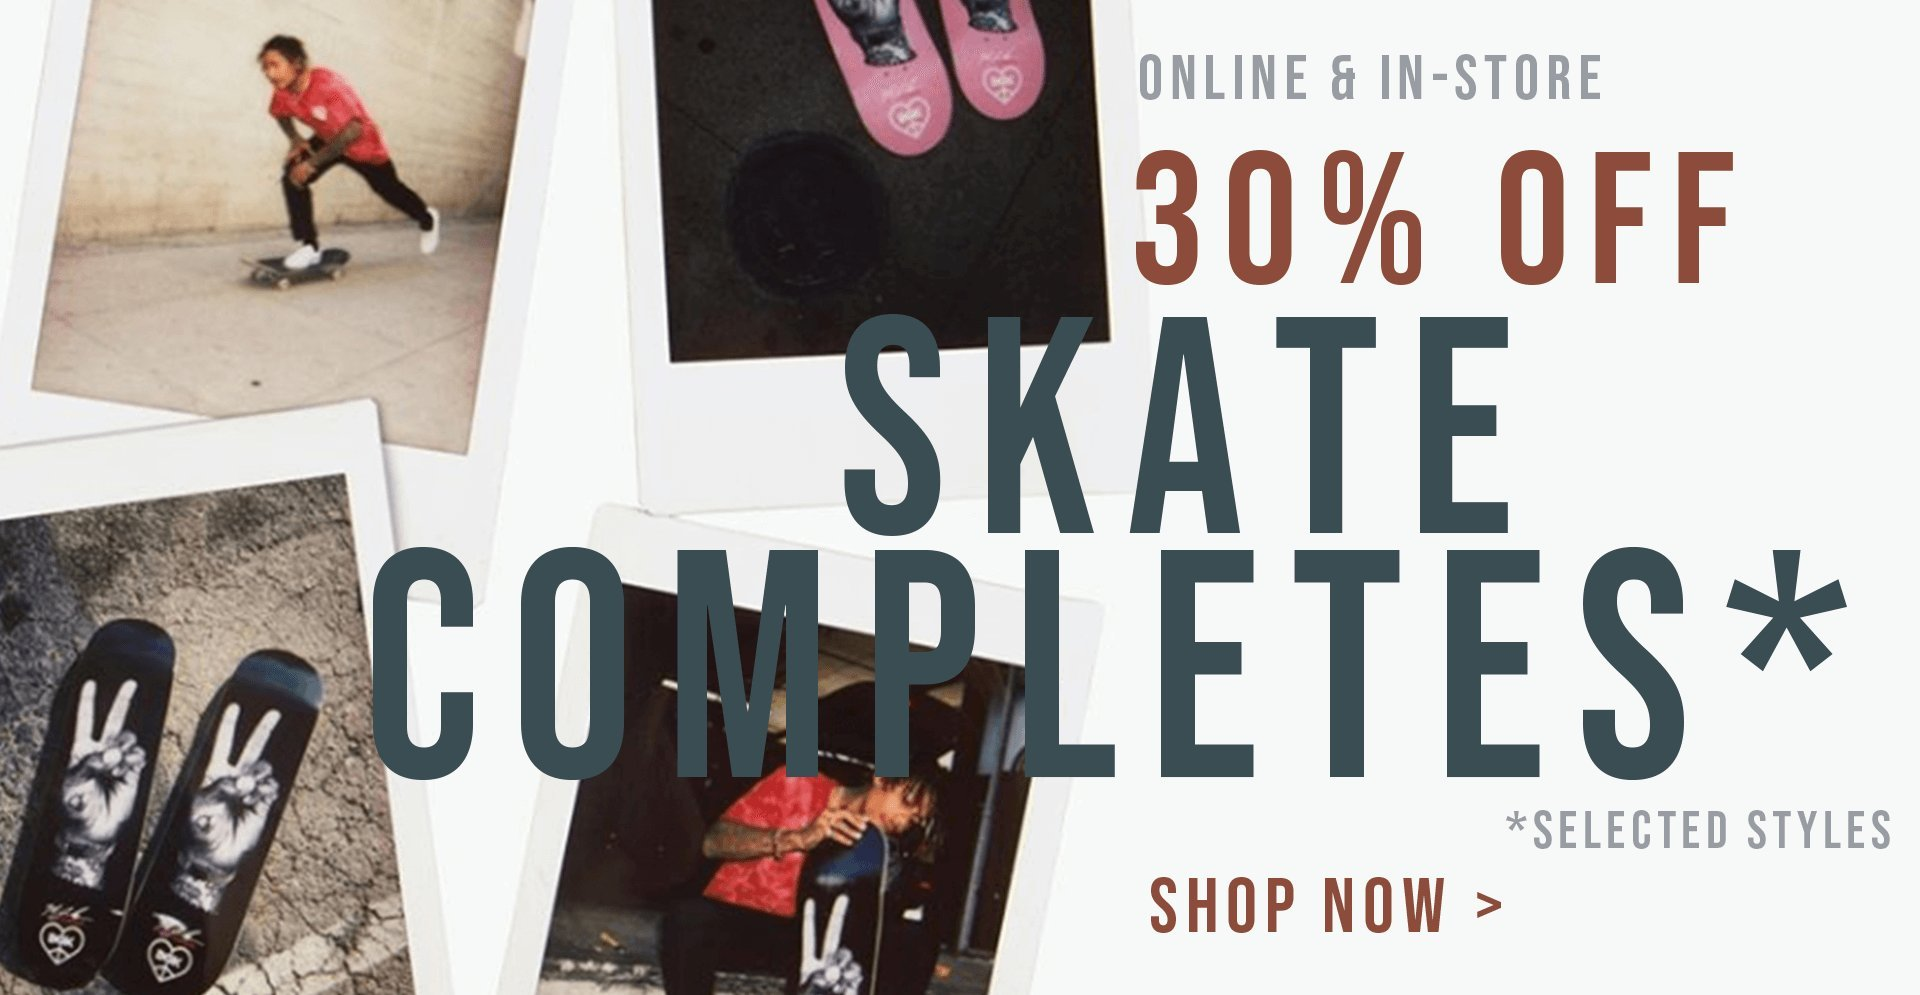 4a374f6b0cd Skate Connection Skateboard Completes 30% off Sale